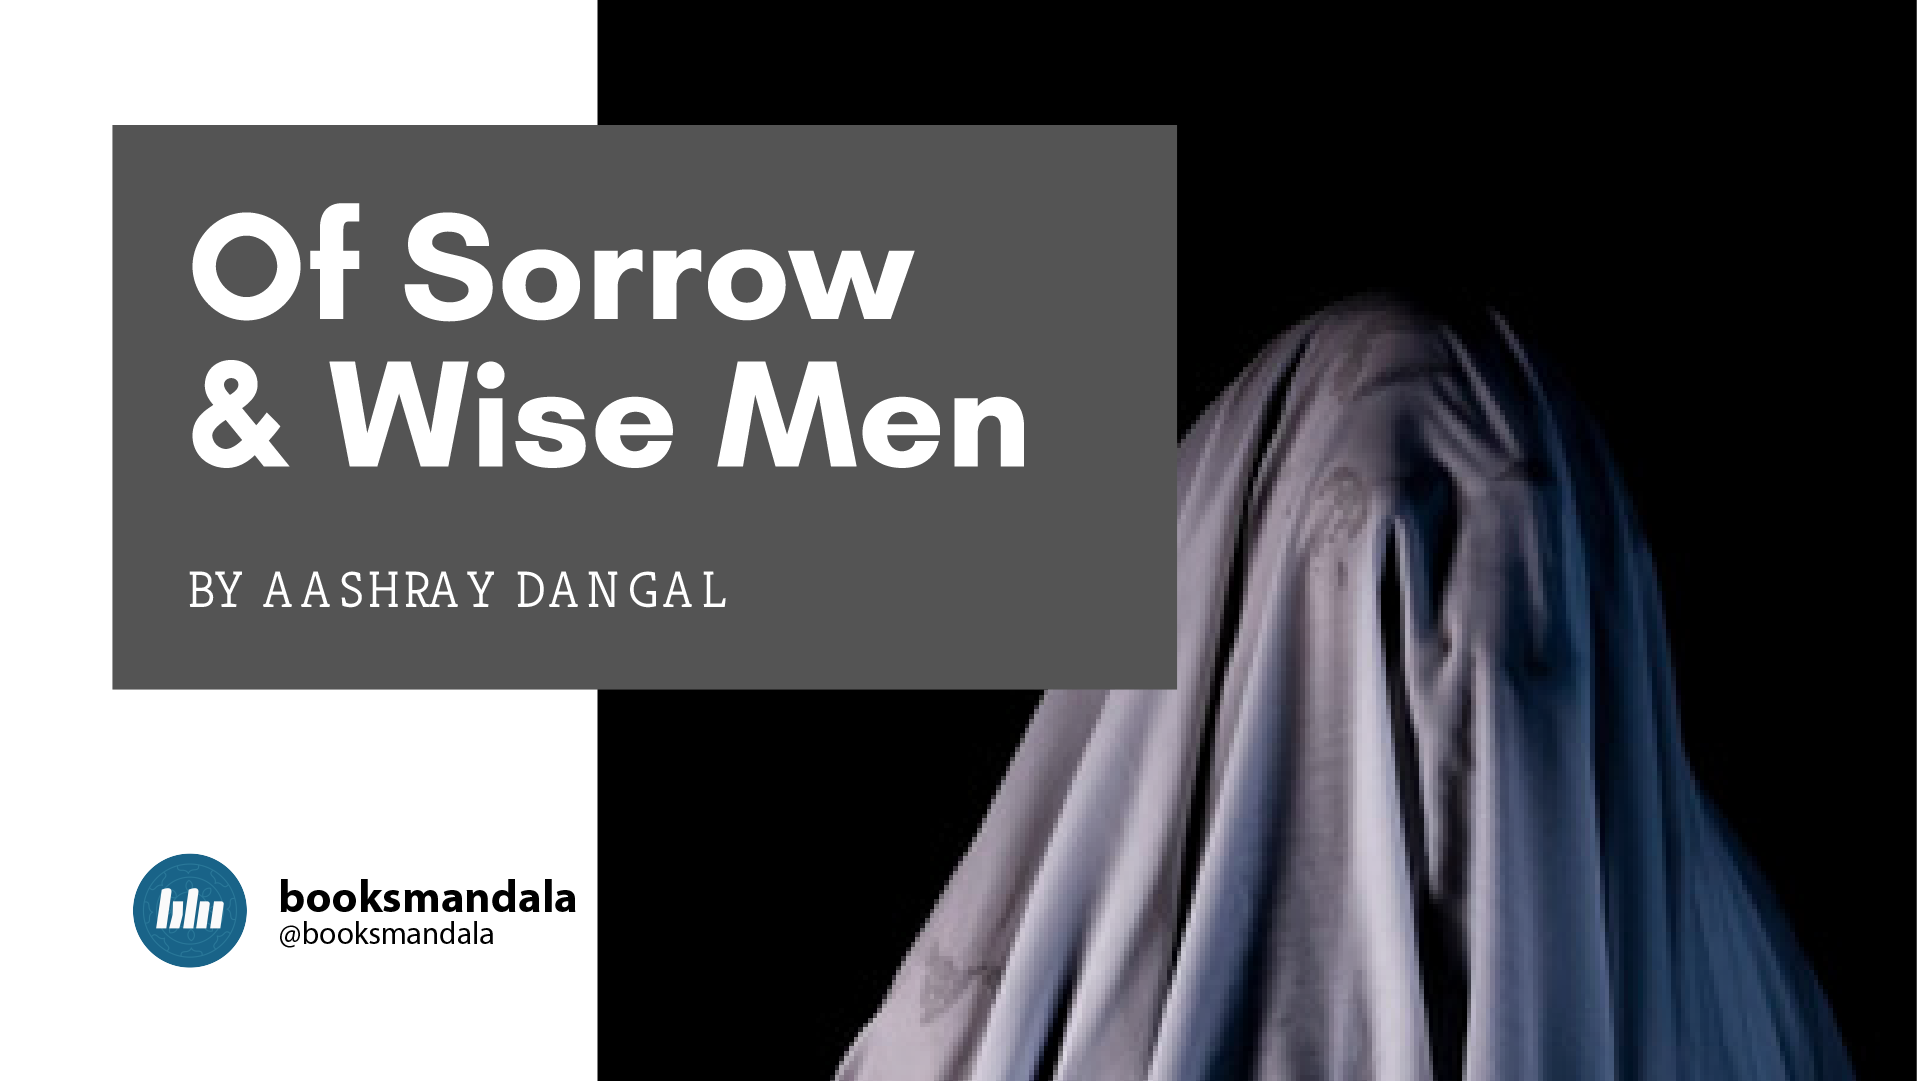 Of Sorrow and Wise men